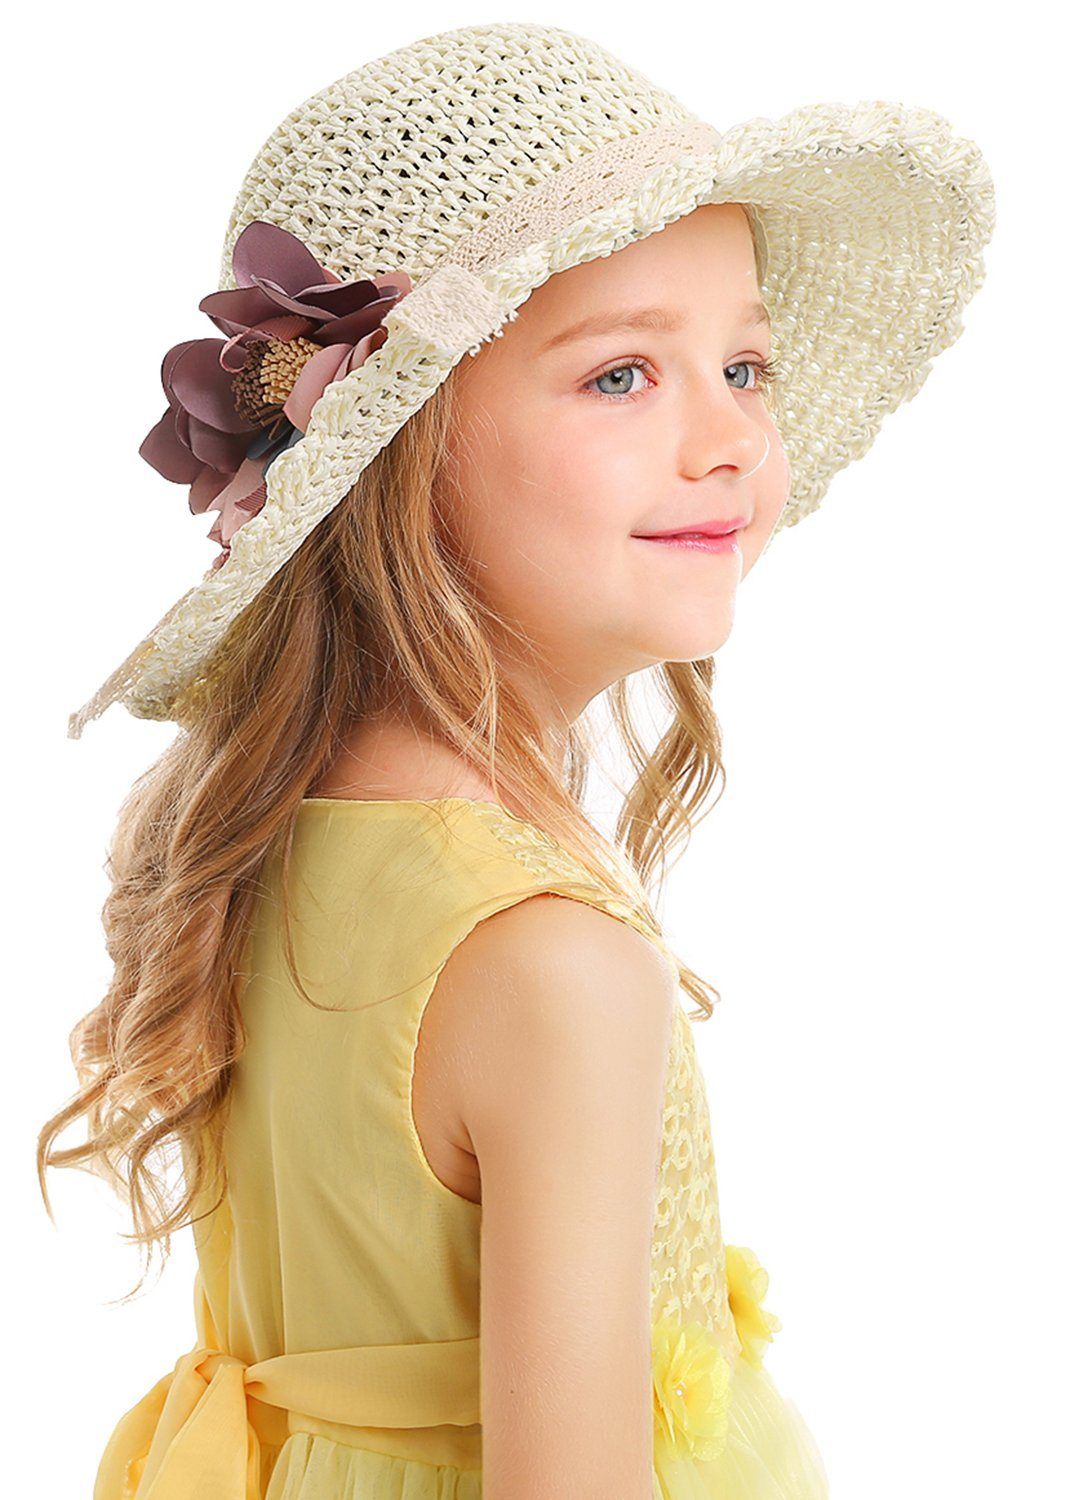 Bienvenu Kids Girl Summer Straw Hat with Flowers Beach Sun Protection Hats,Style2_White